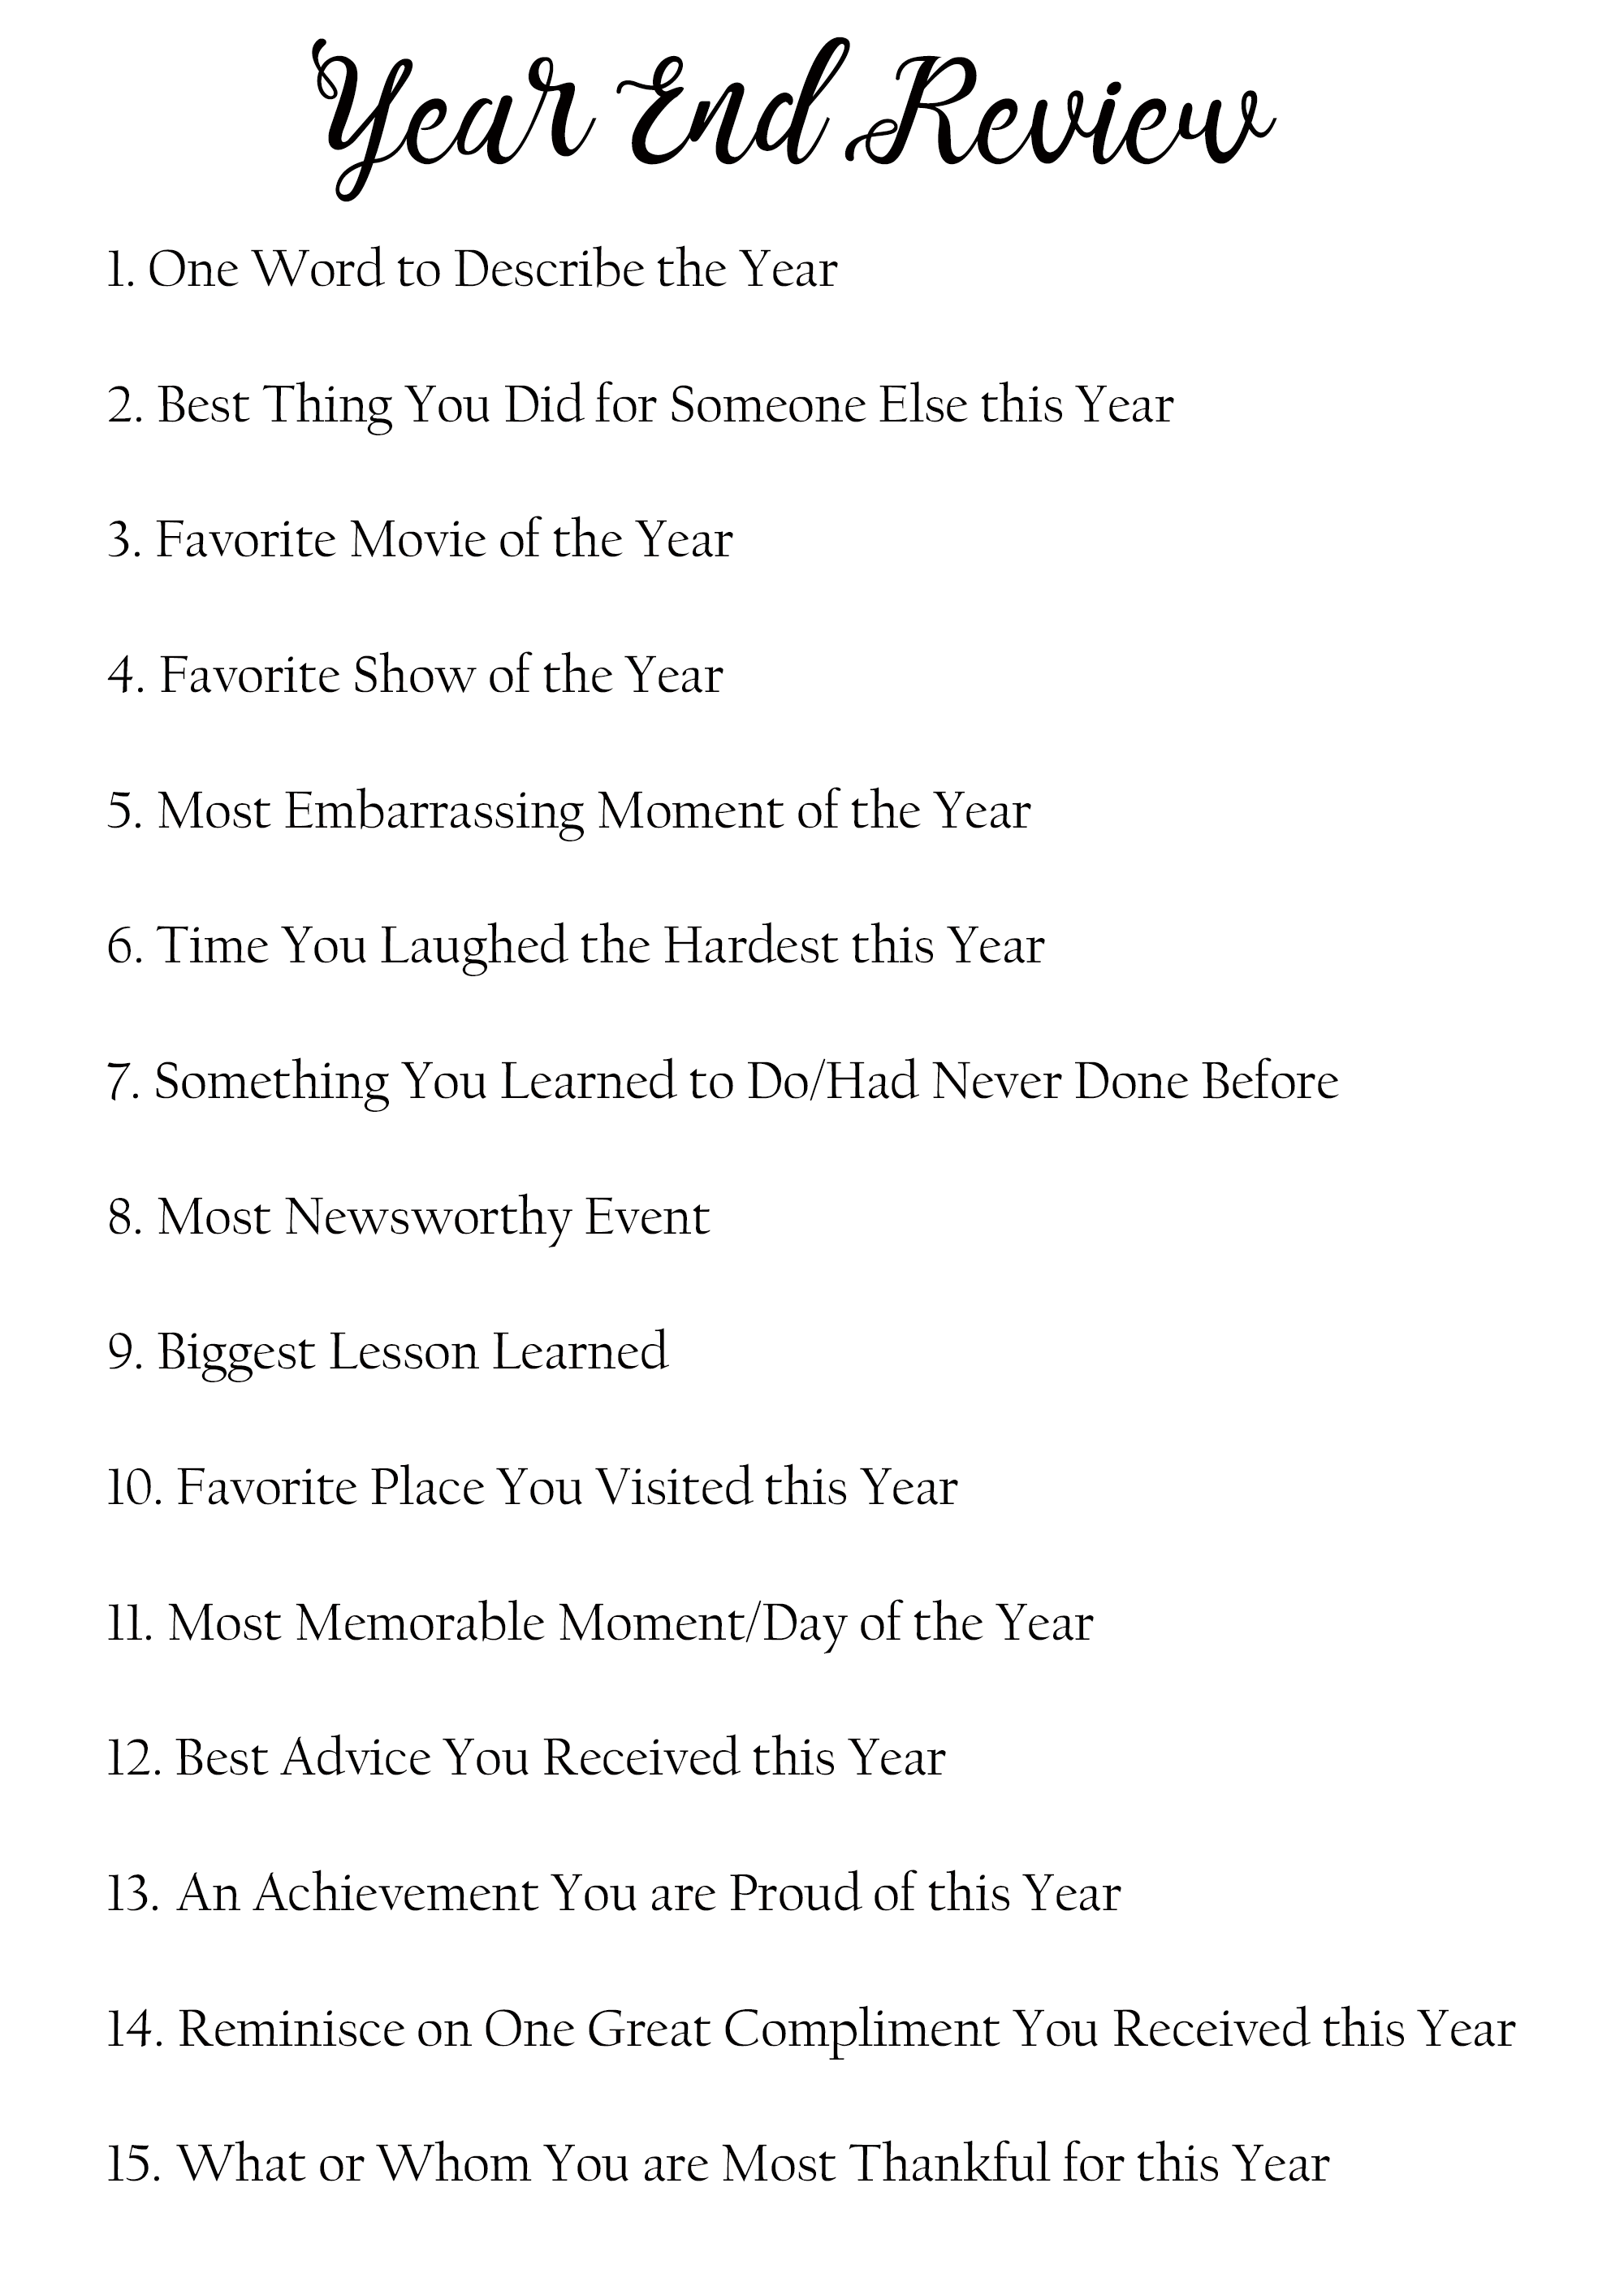 New Year: 15 Questions Year End Review